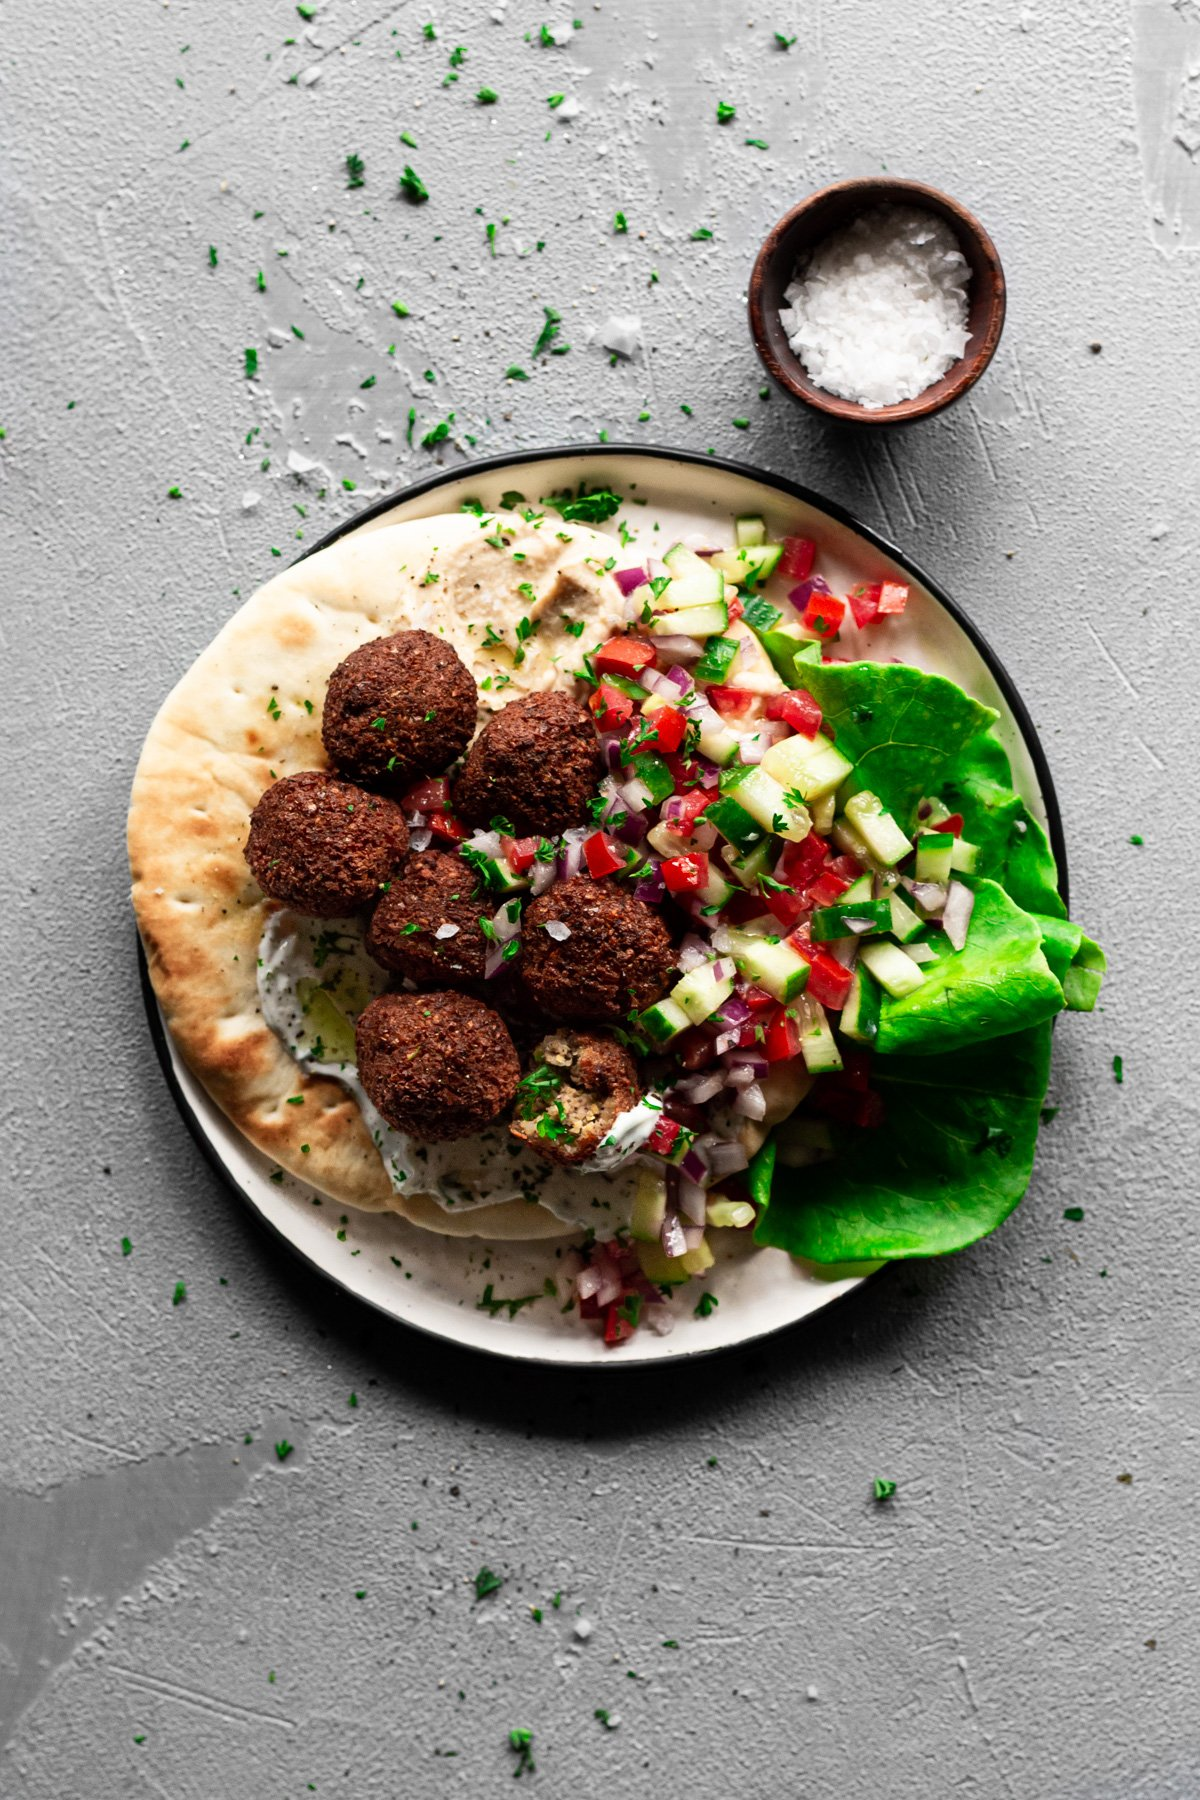 falafel on a pita with hummus, tzatziki, and israeli salad